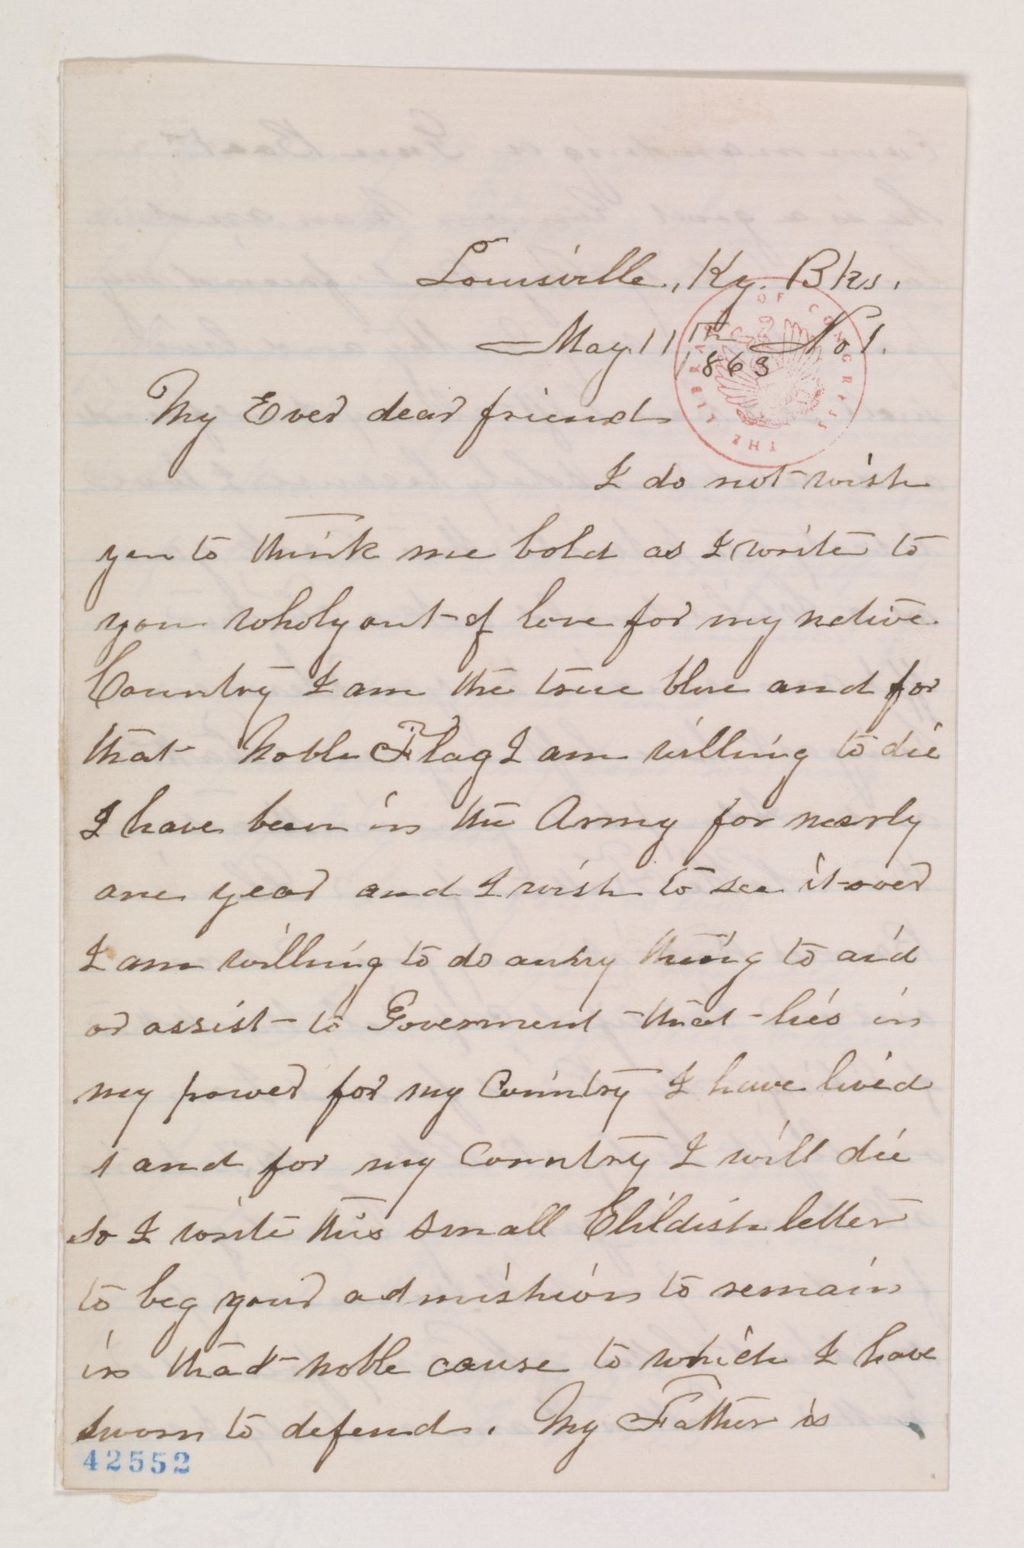 """Our apple jack-drinking friend Ella Reno wrote to Abe Lincoln begging him to let her stay a soldier after she was discovered. Some excerpts (click on the link for the whole delightful transcript):""""My Ever dear friend—I do not wish you to think me bold as I write to you wholy out of love for my native Country…I have been in the Army for nearly one year and I wish to see it over I am willing to do anny thing to aid or assist…I love liberty So I write this to ask you as a Child would ask a Father iff I can remain in your Service being as I have left my own Father and Adoupted you in stead…I am a Lady in every respect and so I will remain answer if you will pleas be so kind…pleas excuse my poor writing and Speling also."""" - Courtesy of the Library of Congress"""